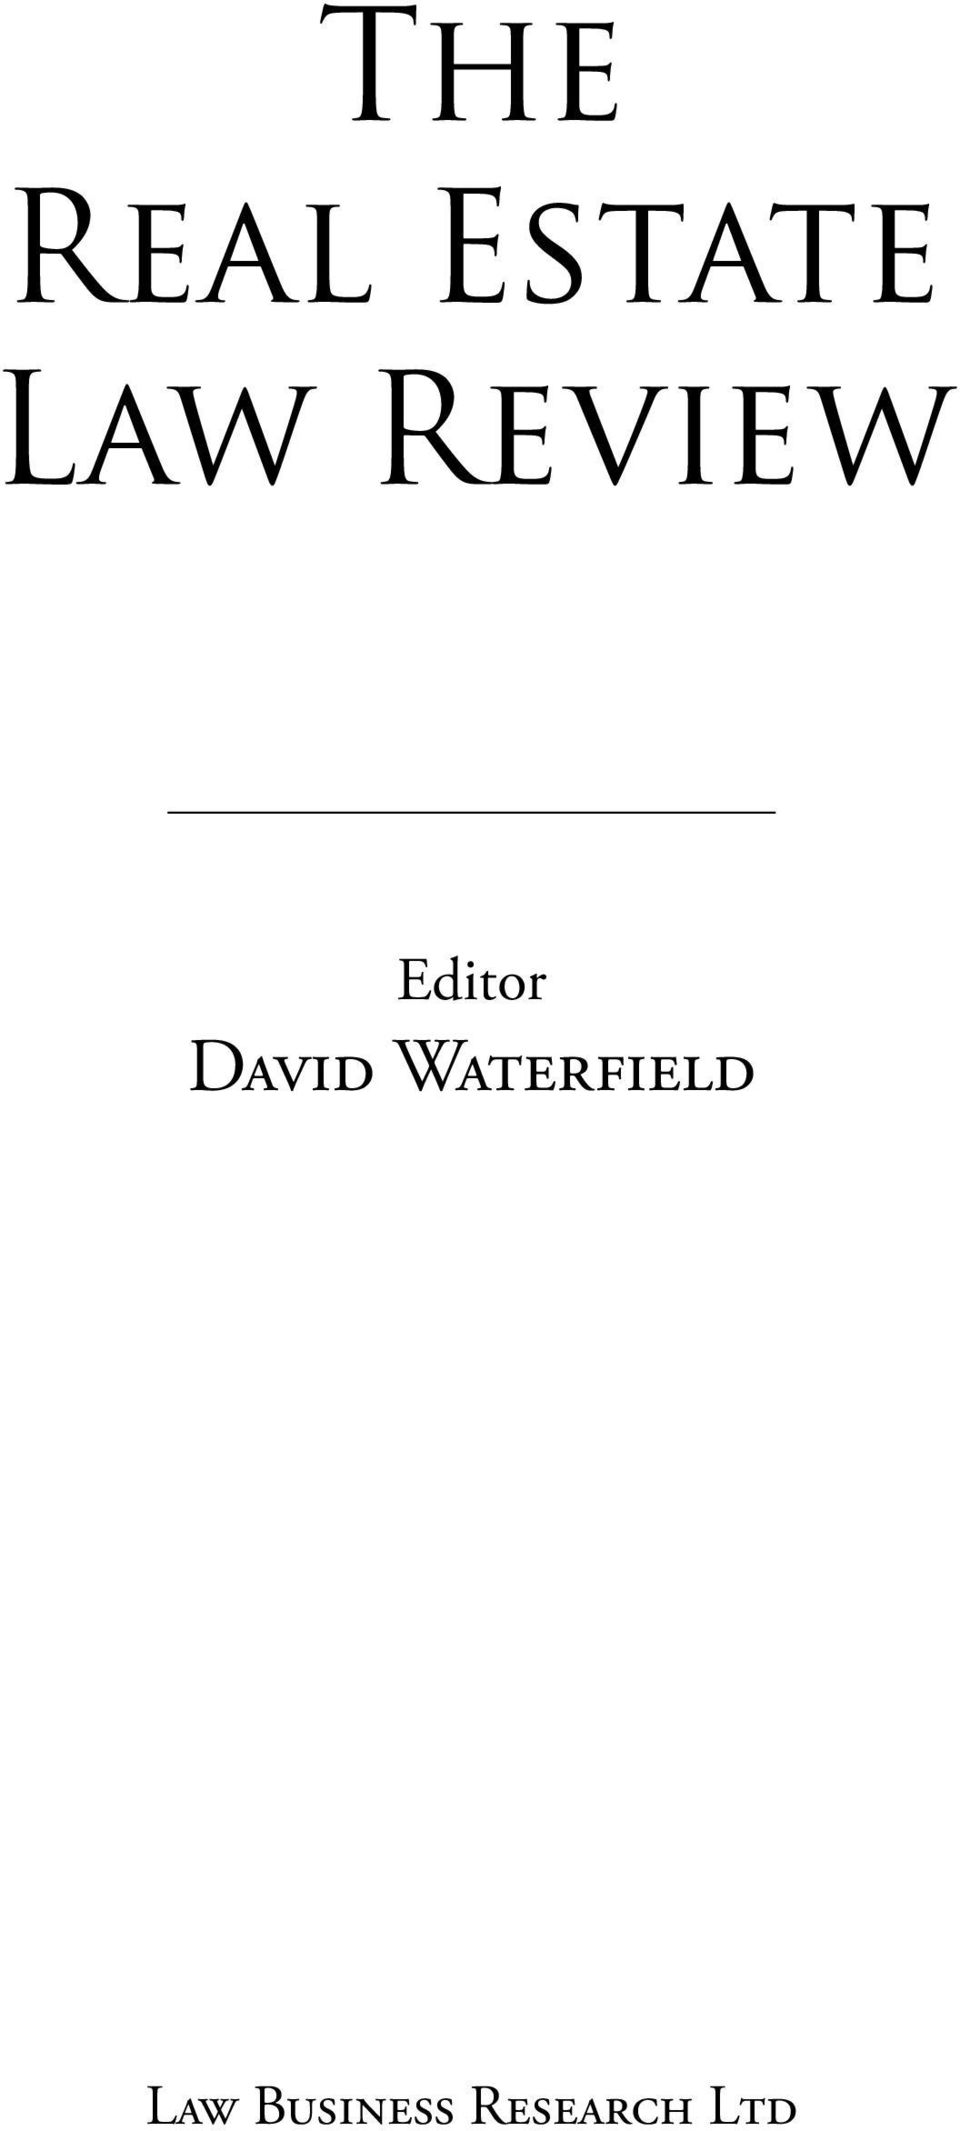 David Waterfield